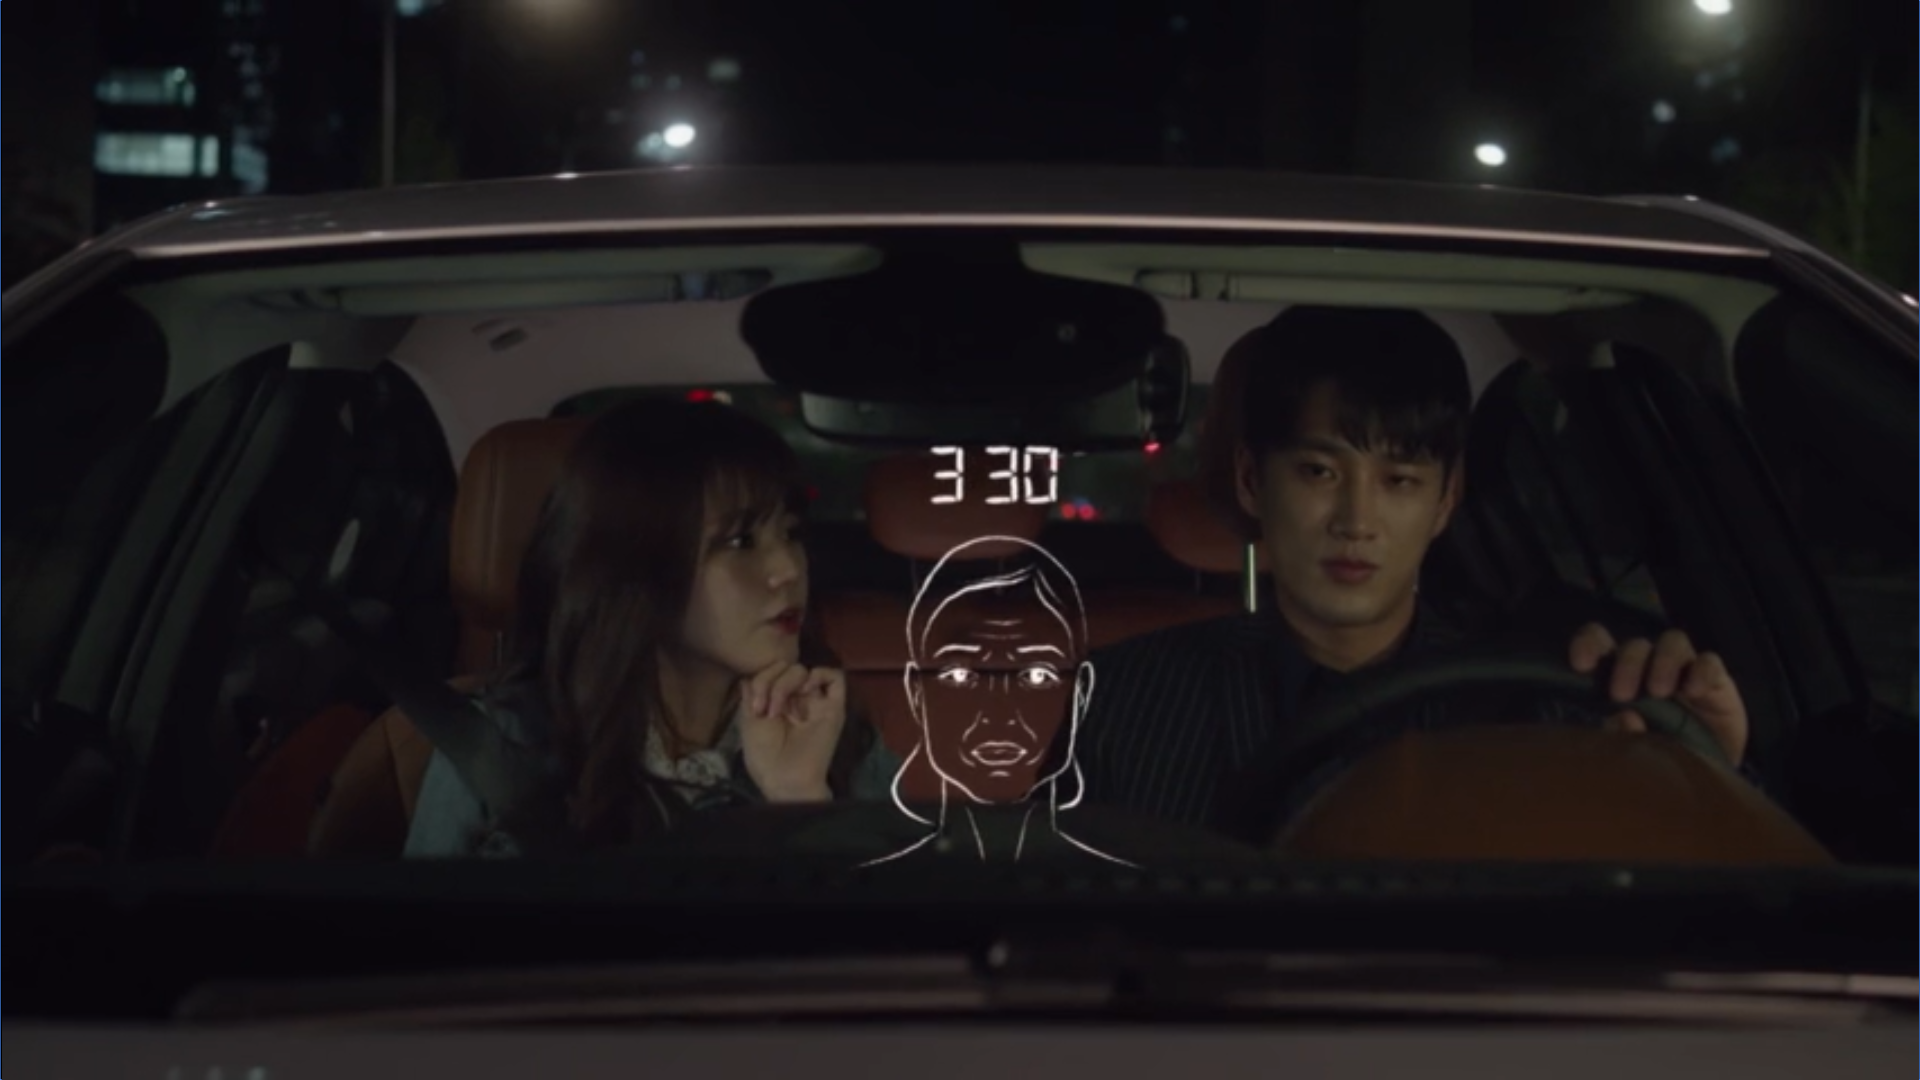 Wednesday 3:30 PM Baek Seung-gyu in the car with new girlfriend